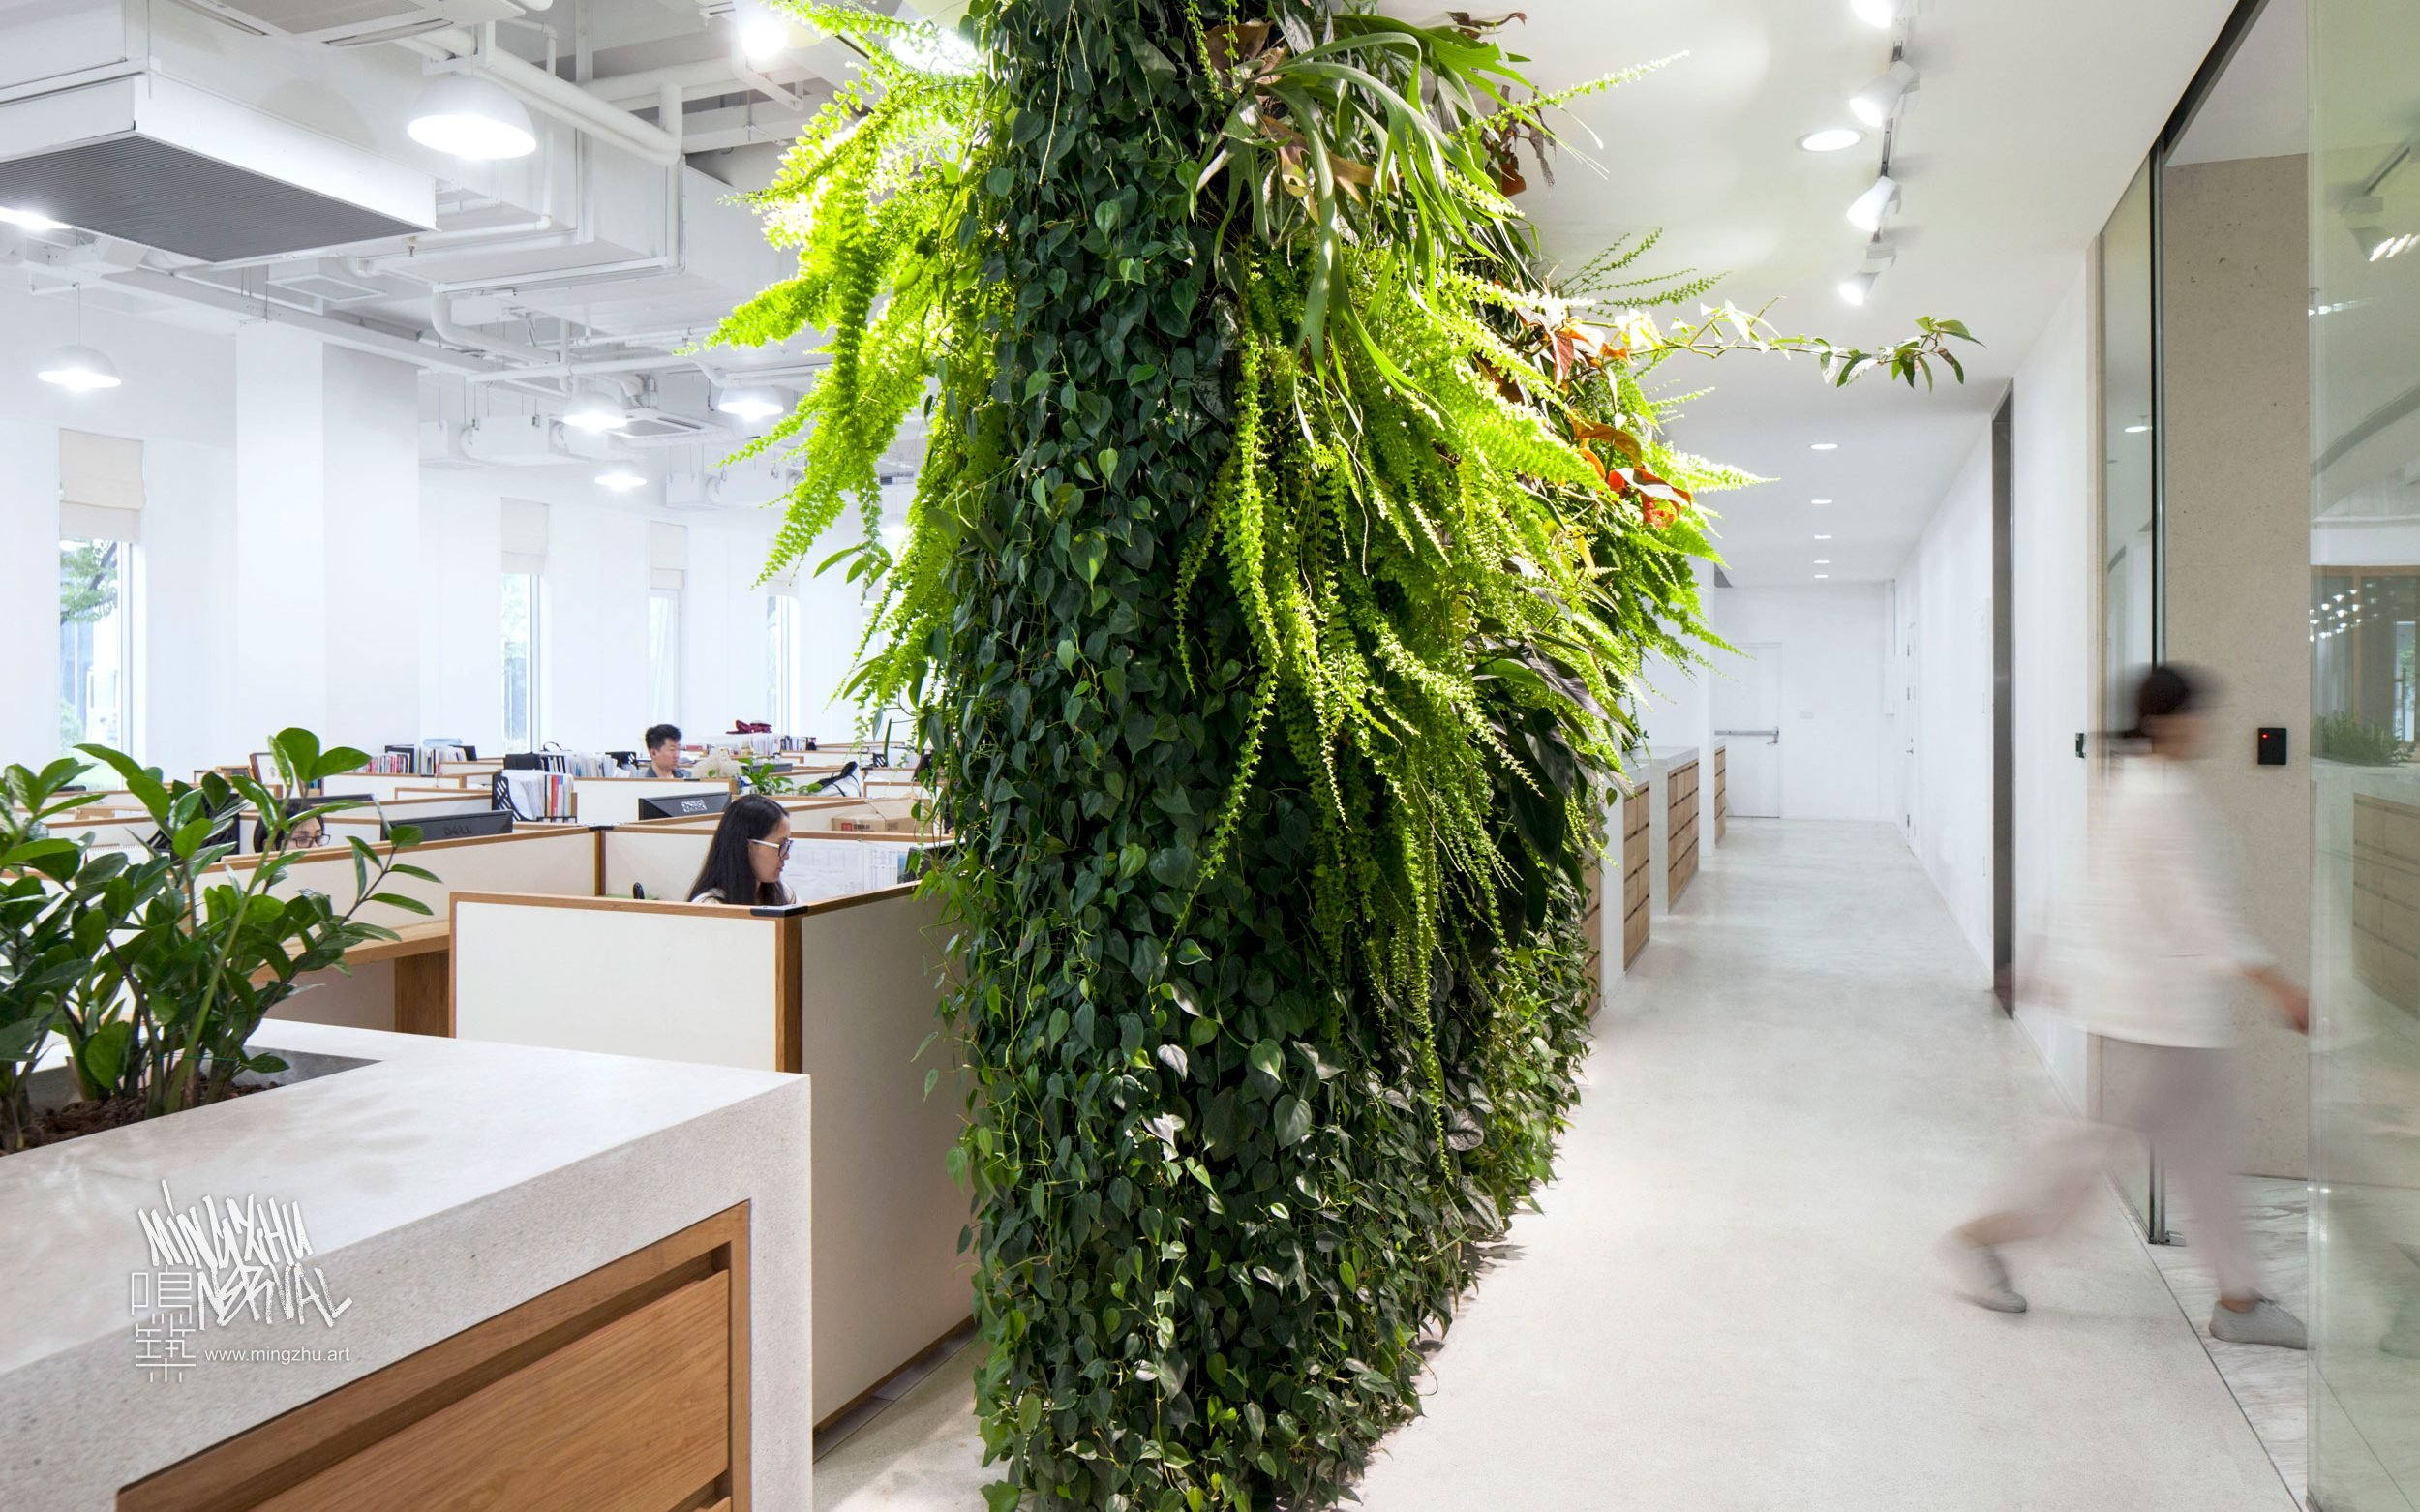 At Mingzhu Nerval, we thrive at creating the most beautiful vertical gardens in the world. For ICICLE, we created an elegant living wall – Shanghai, 2016.